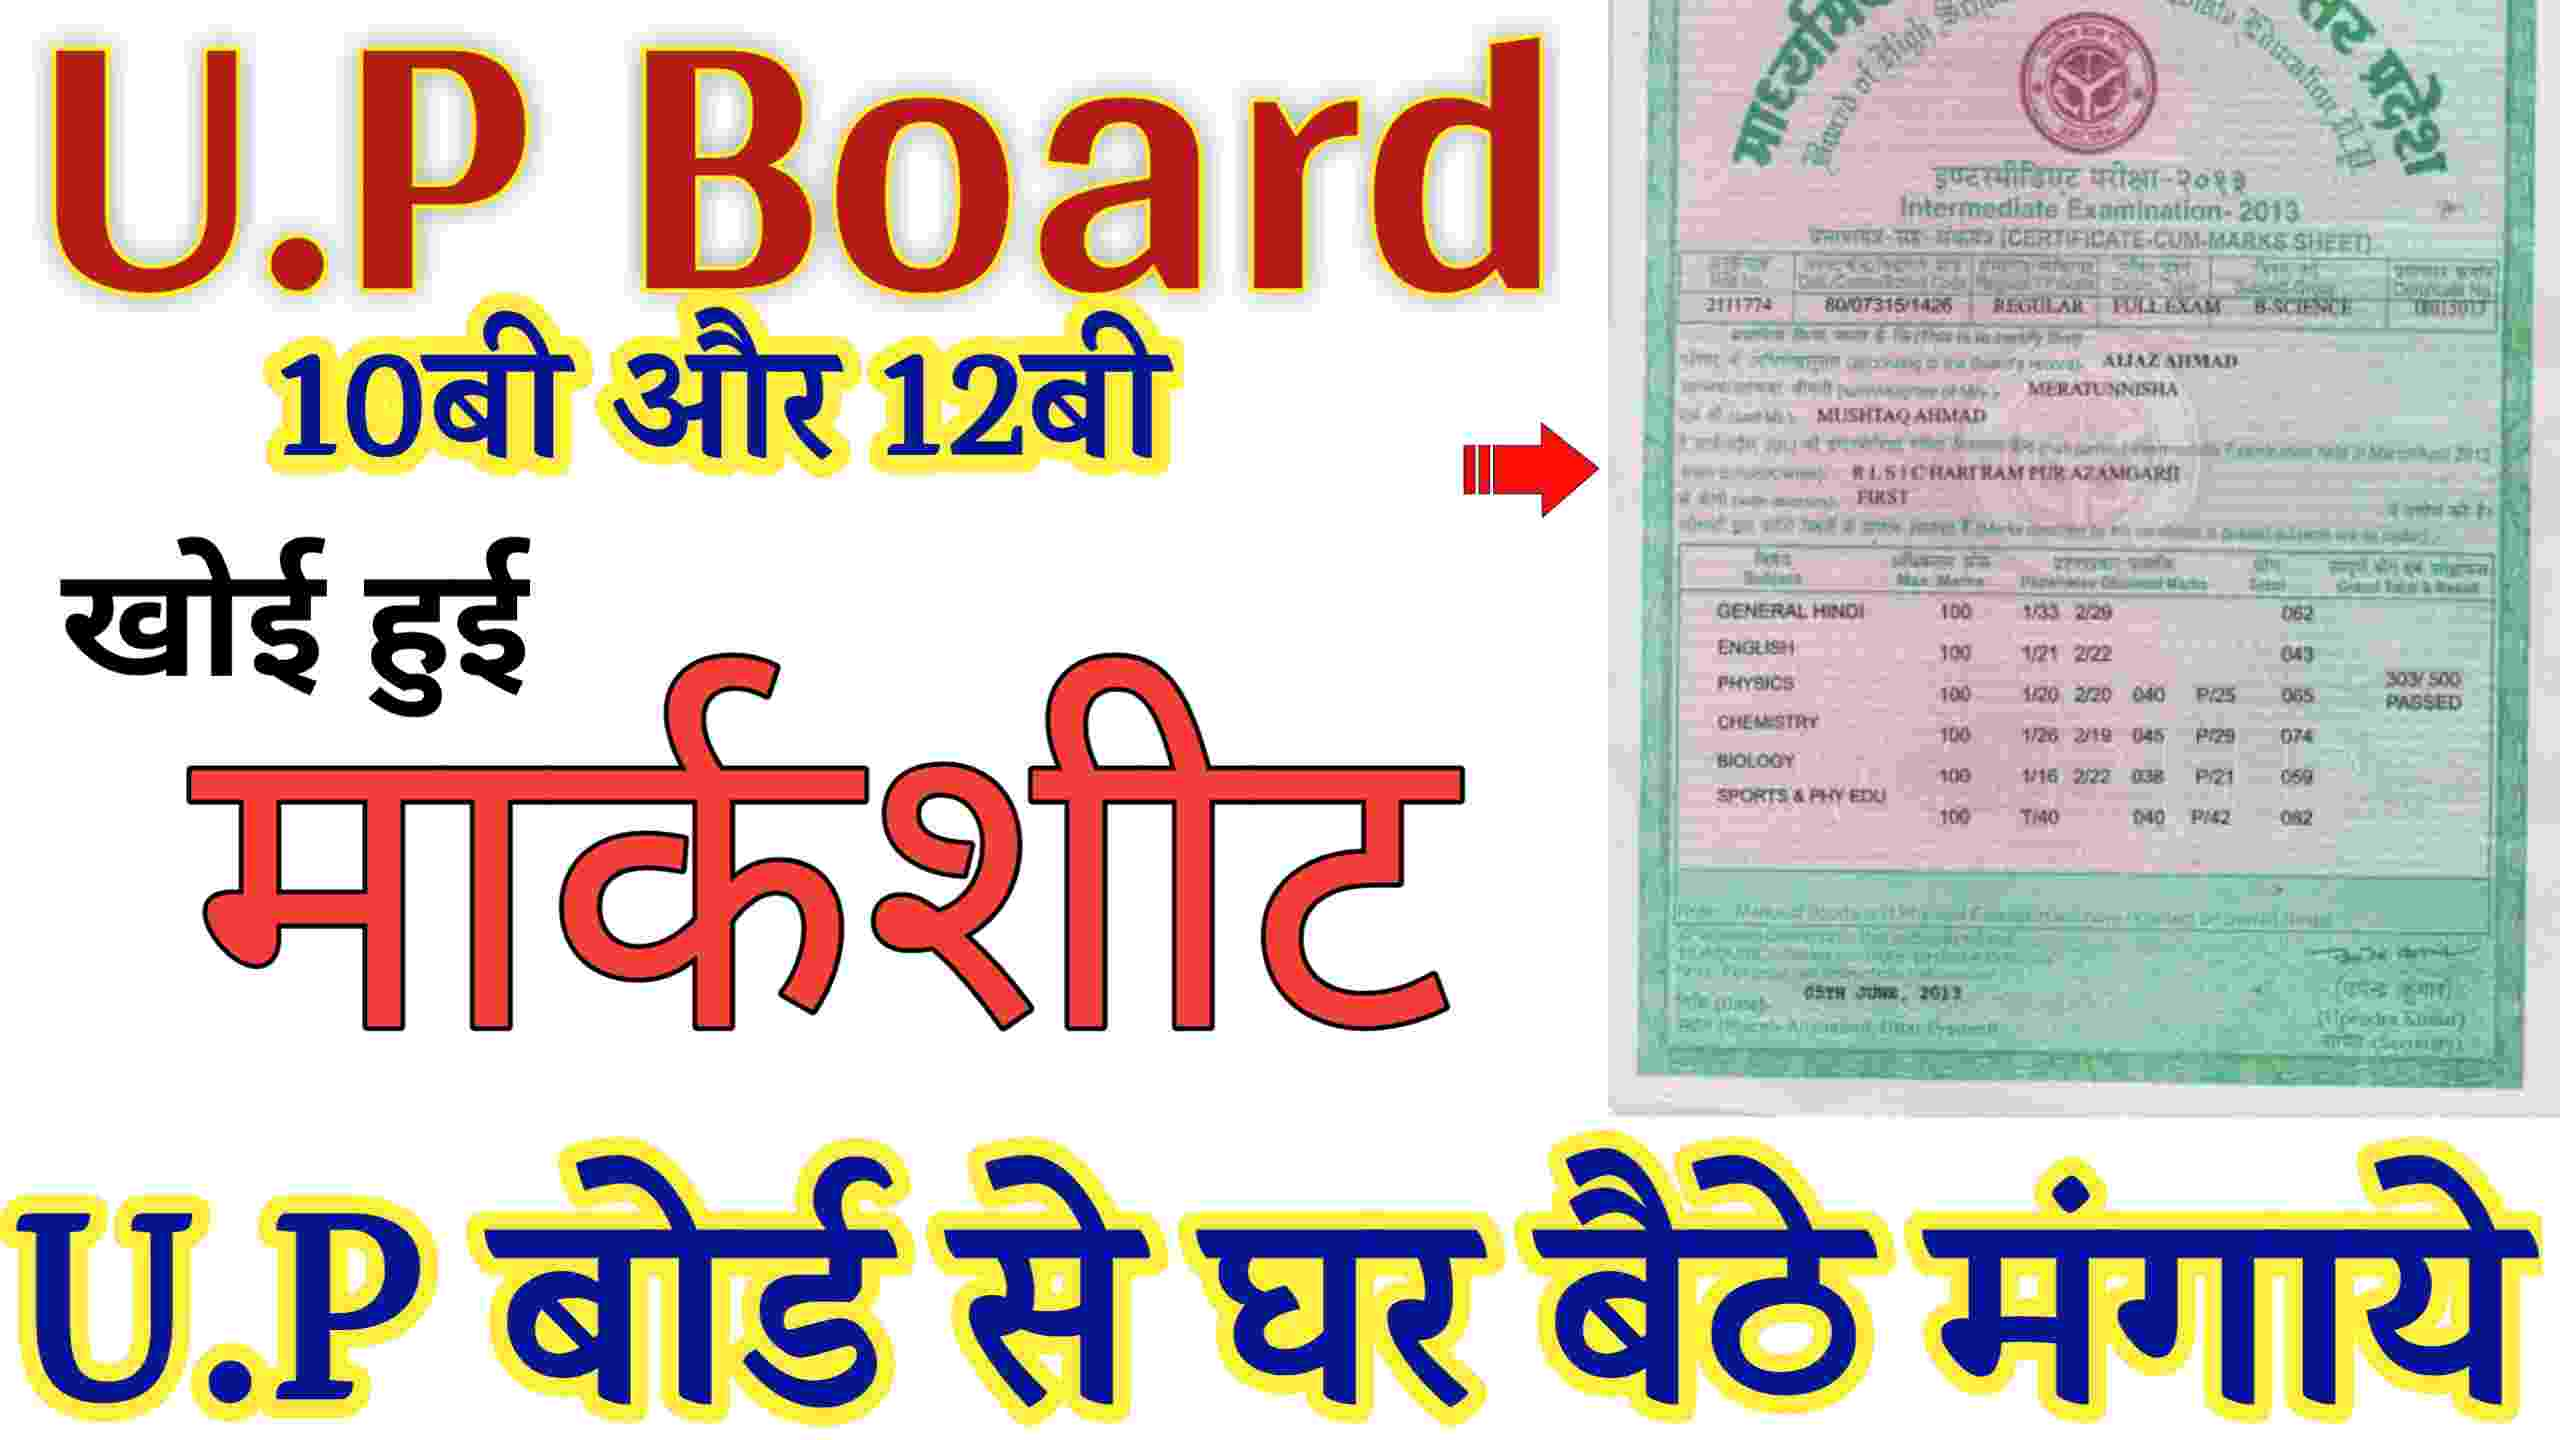 U.P Board Duplicate Marksheet Or Certificate Online up board 10th ,12th